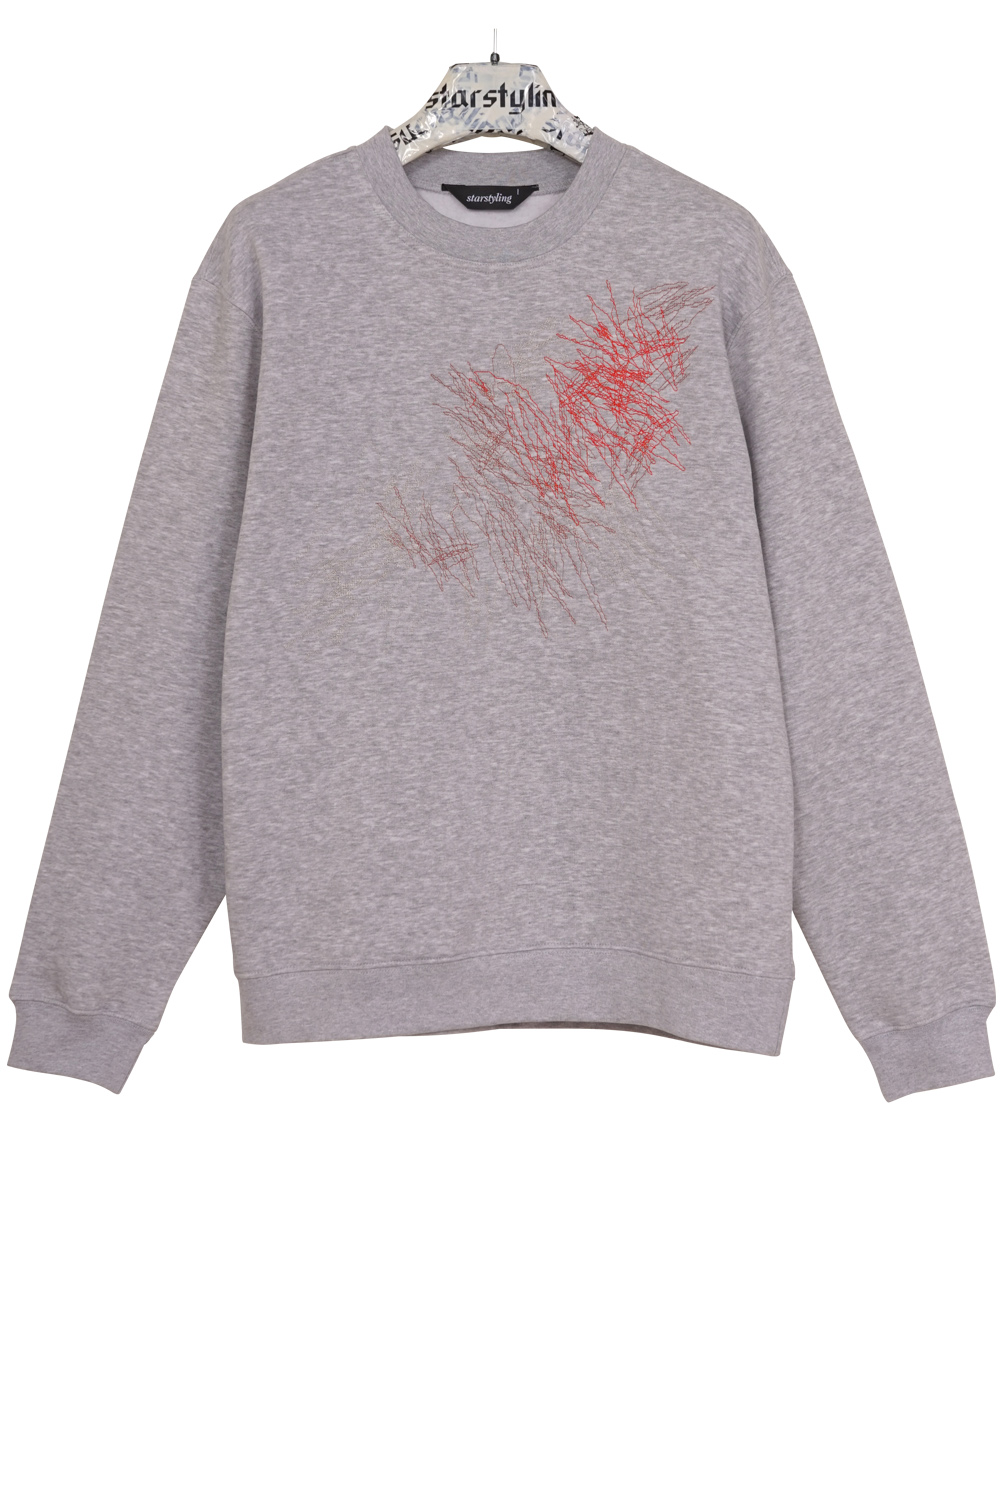 Lurex Krikel Sweater - 0